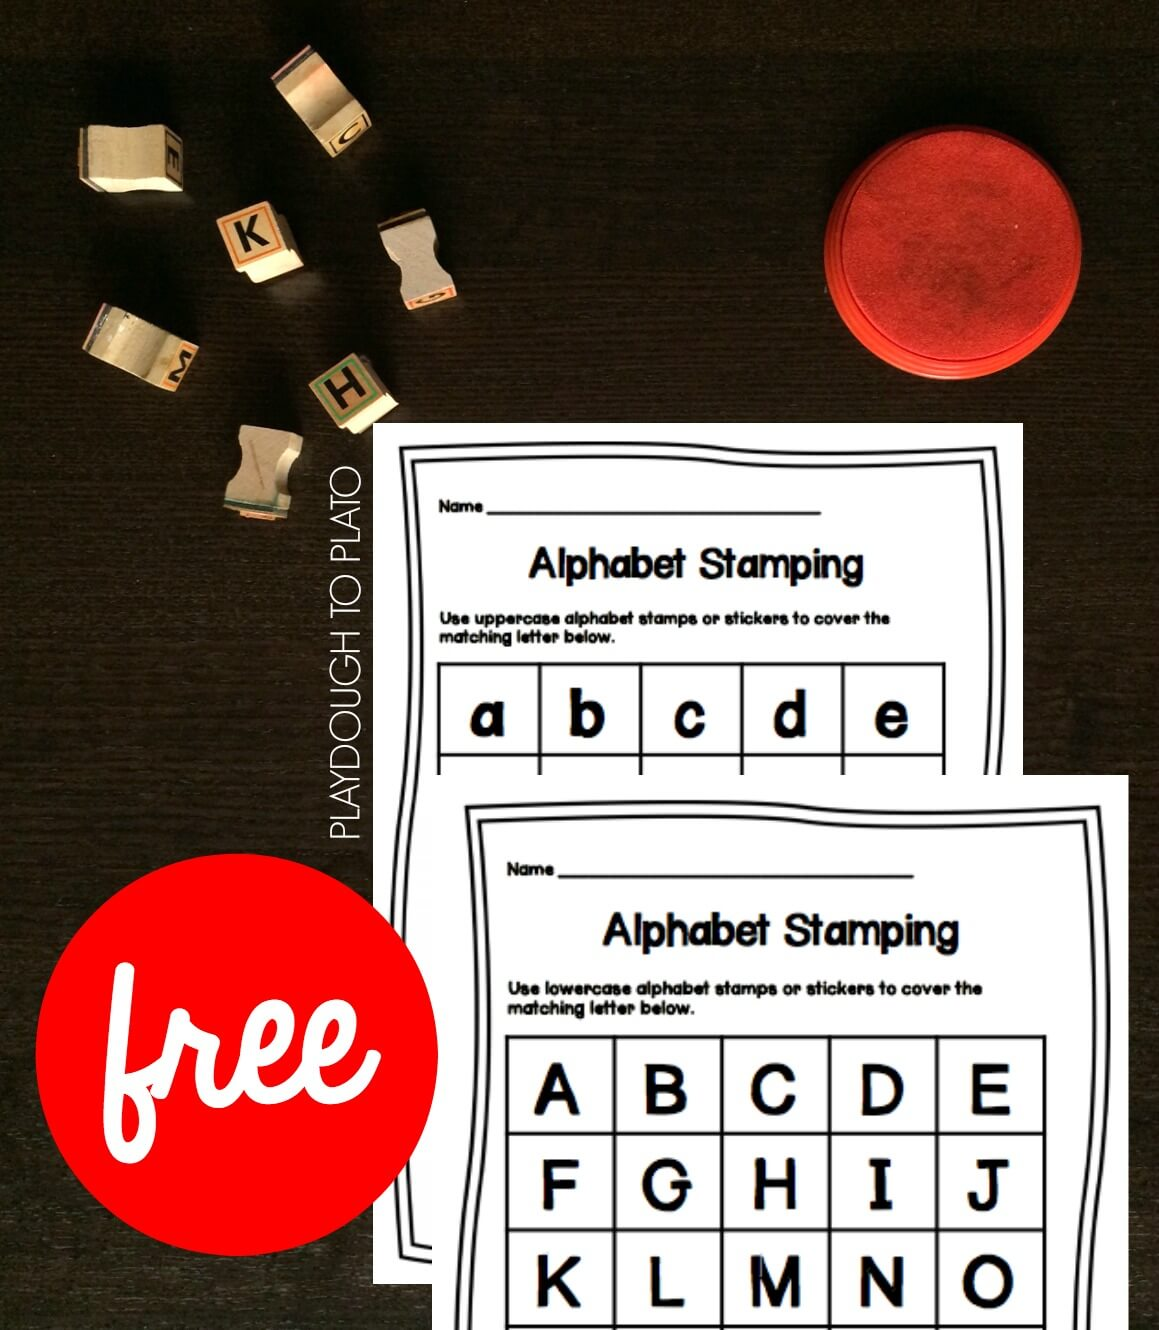 Abc Game Alphabet Stamping